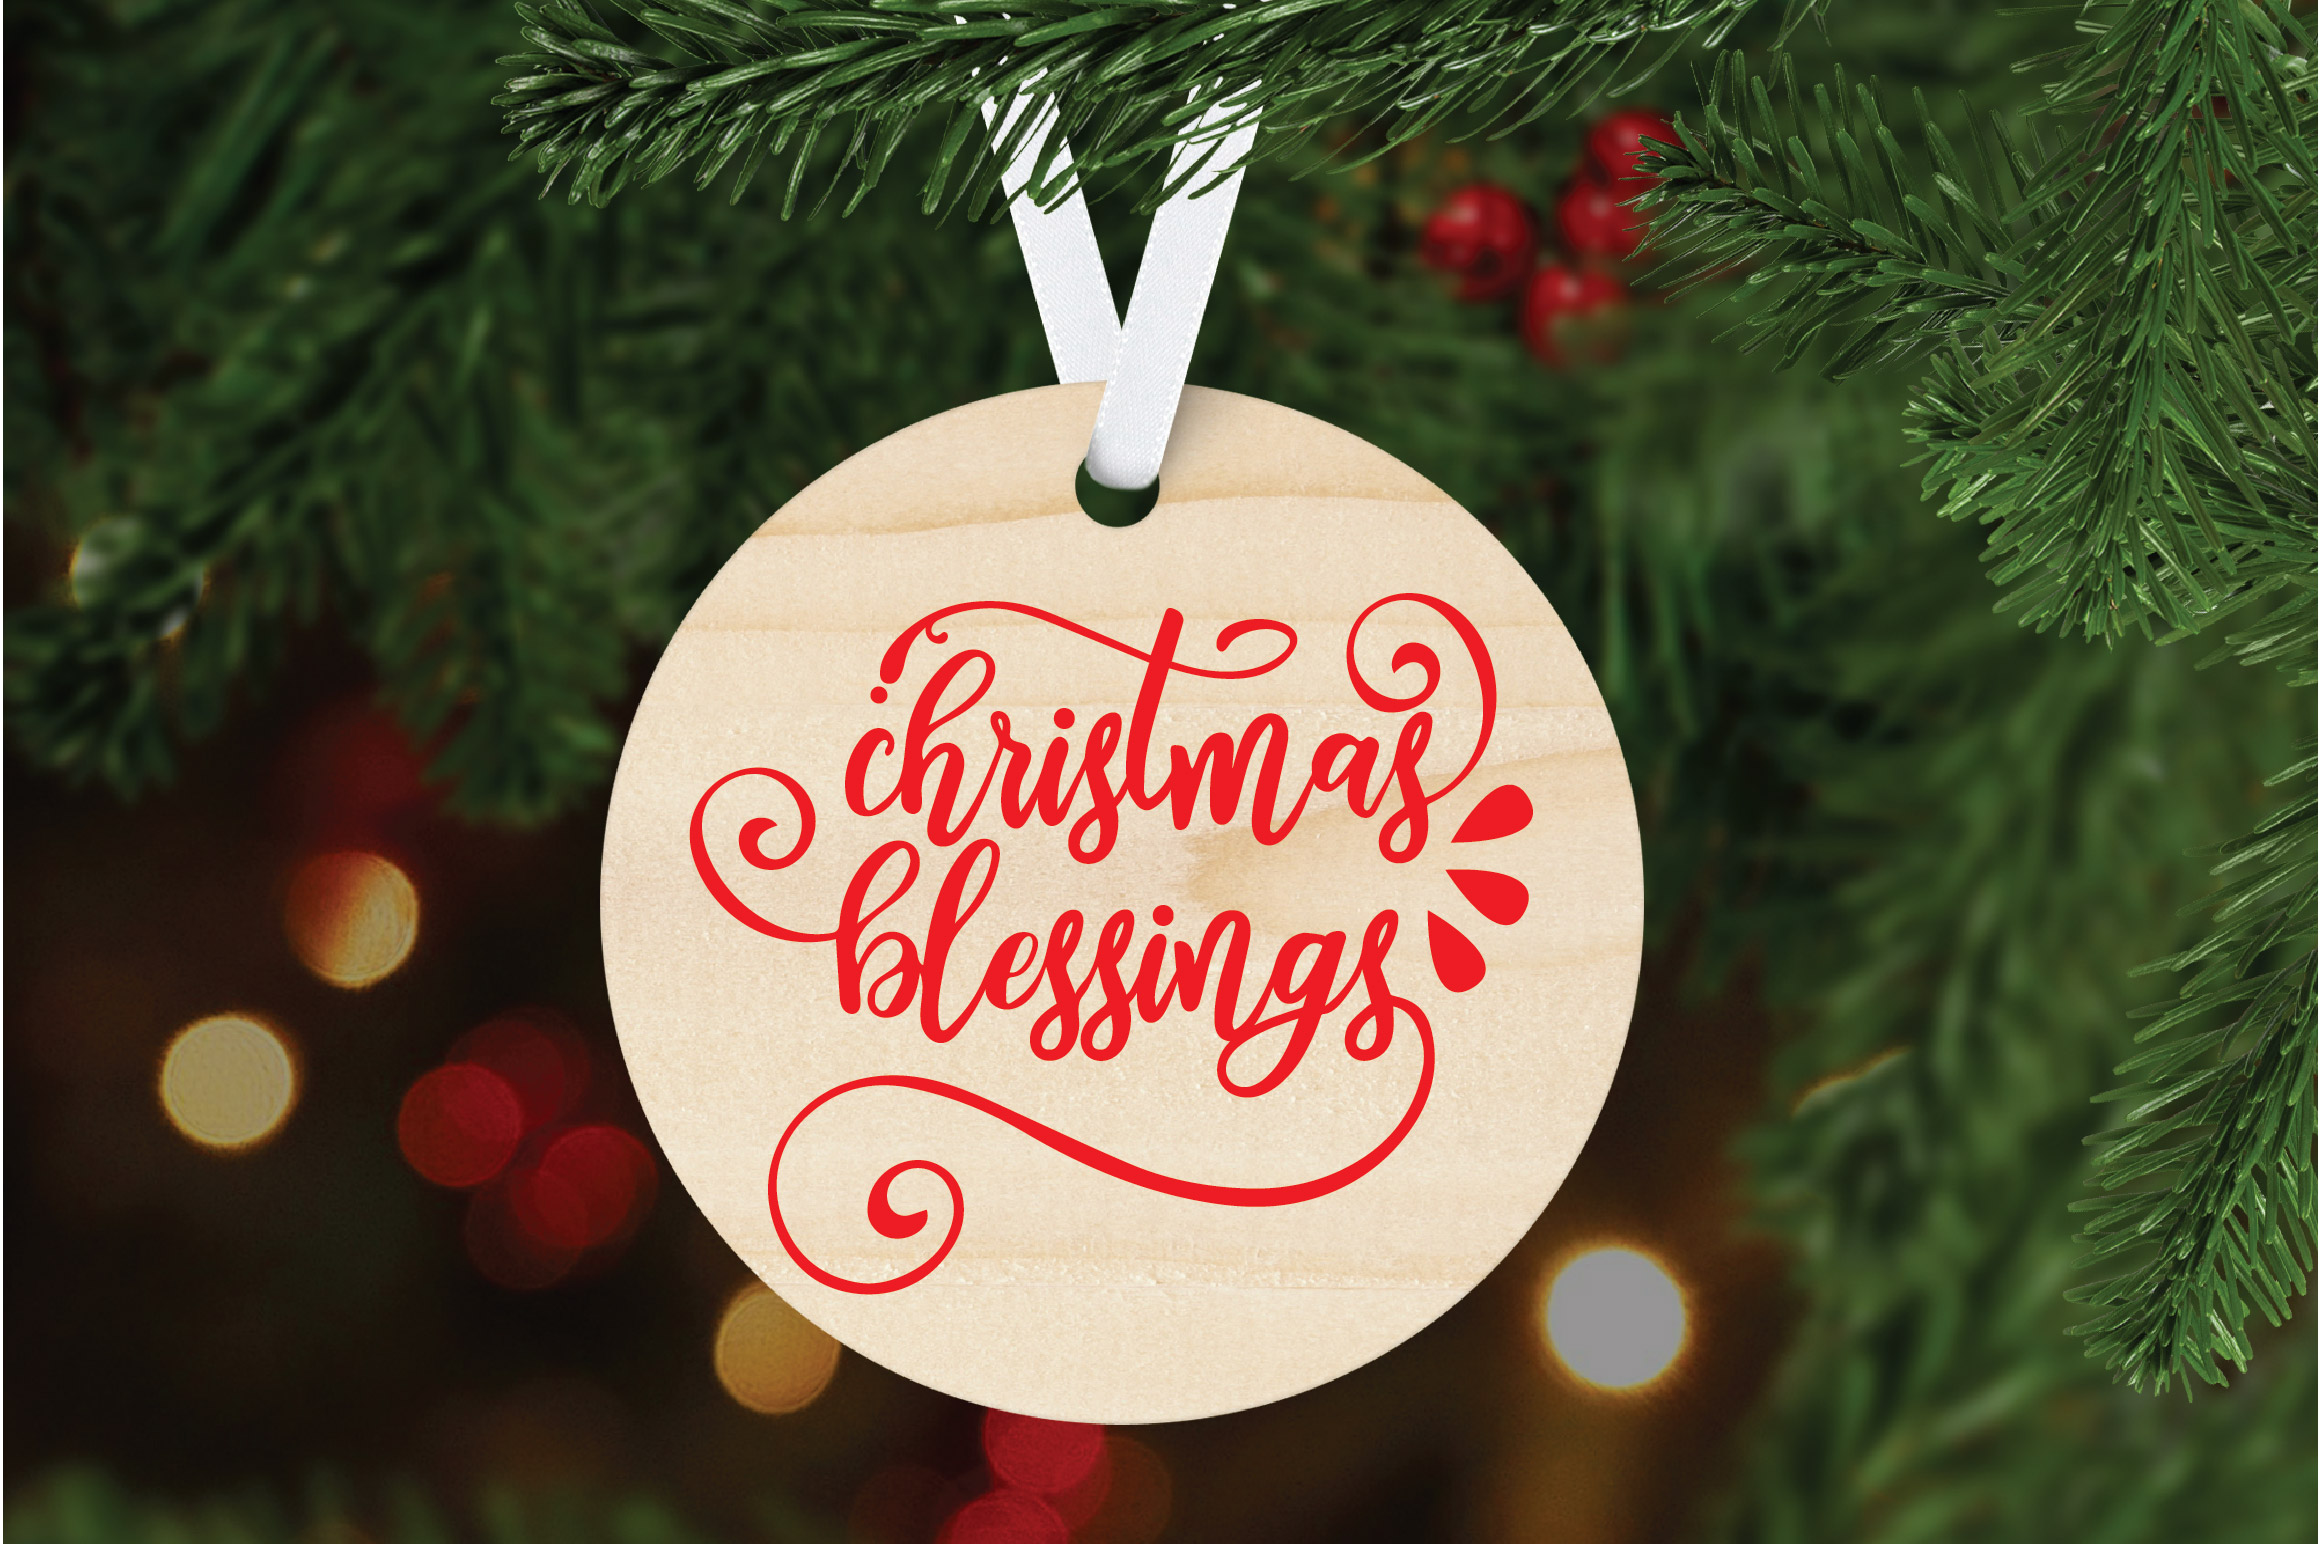 Christmas SVG Cut File - Christmas Blessings SVG DXF PNG EPS example image 6